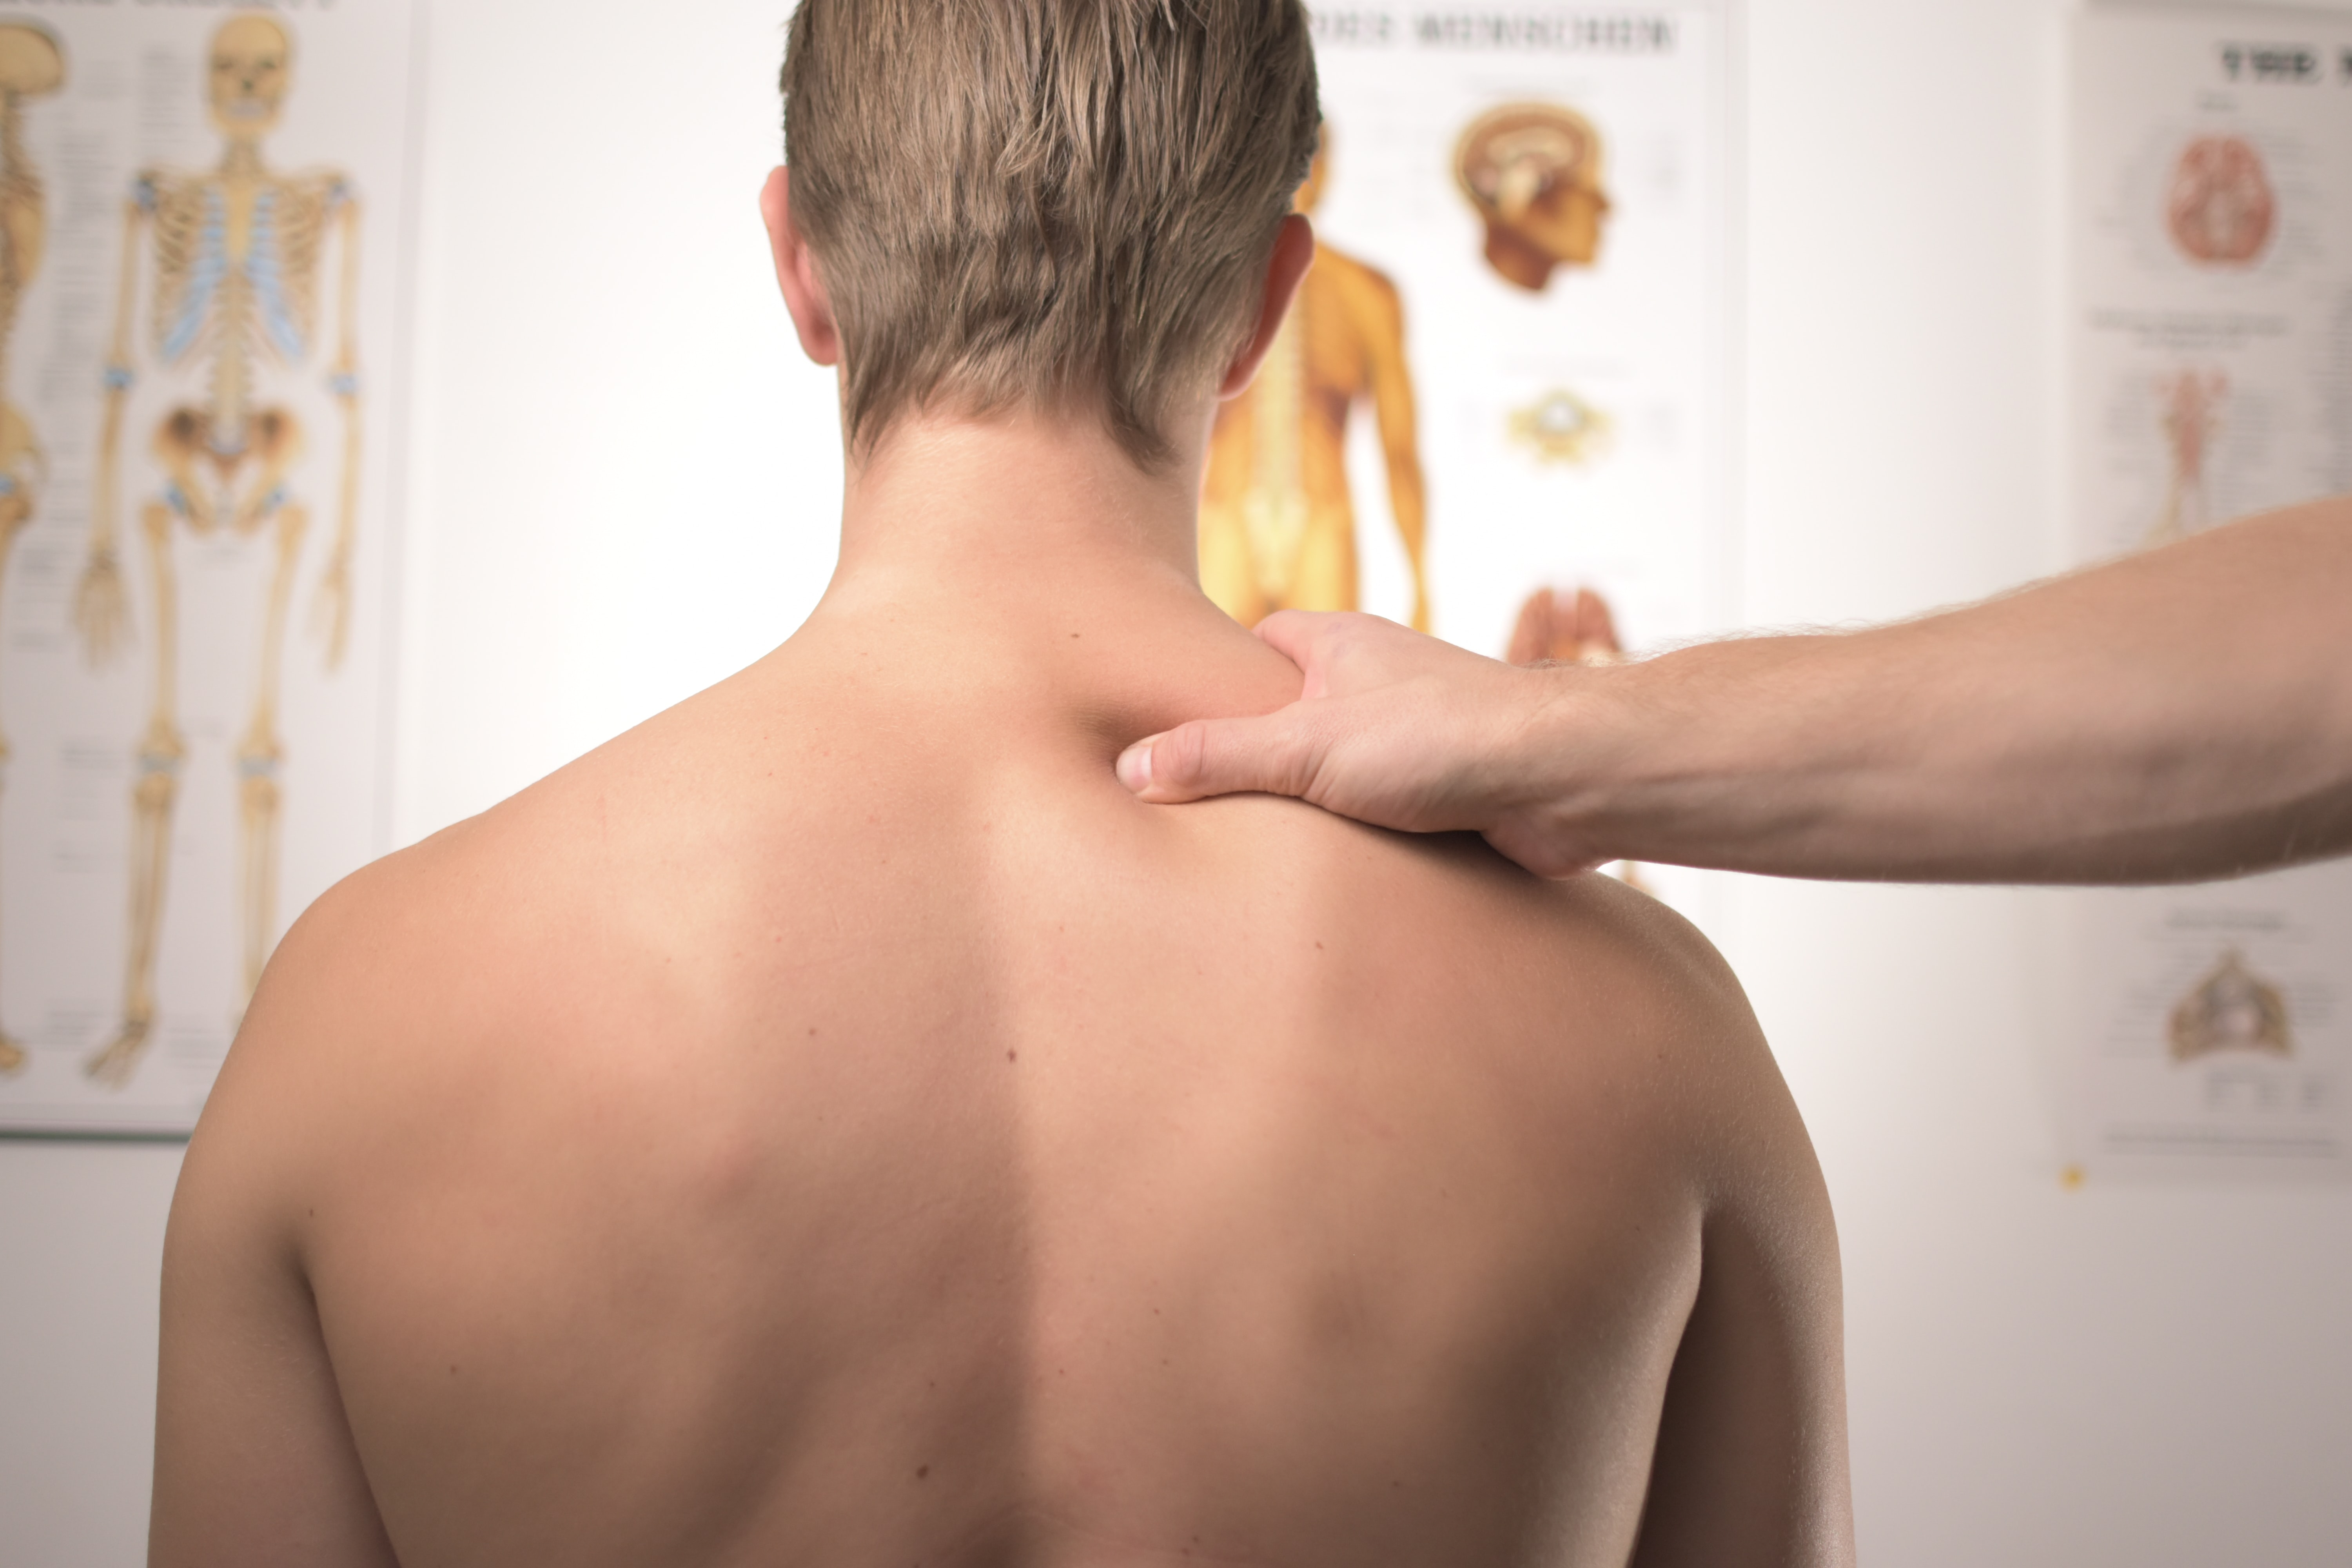 How Disabling is Lumbar Spinal Stenosis?